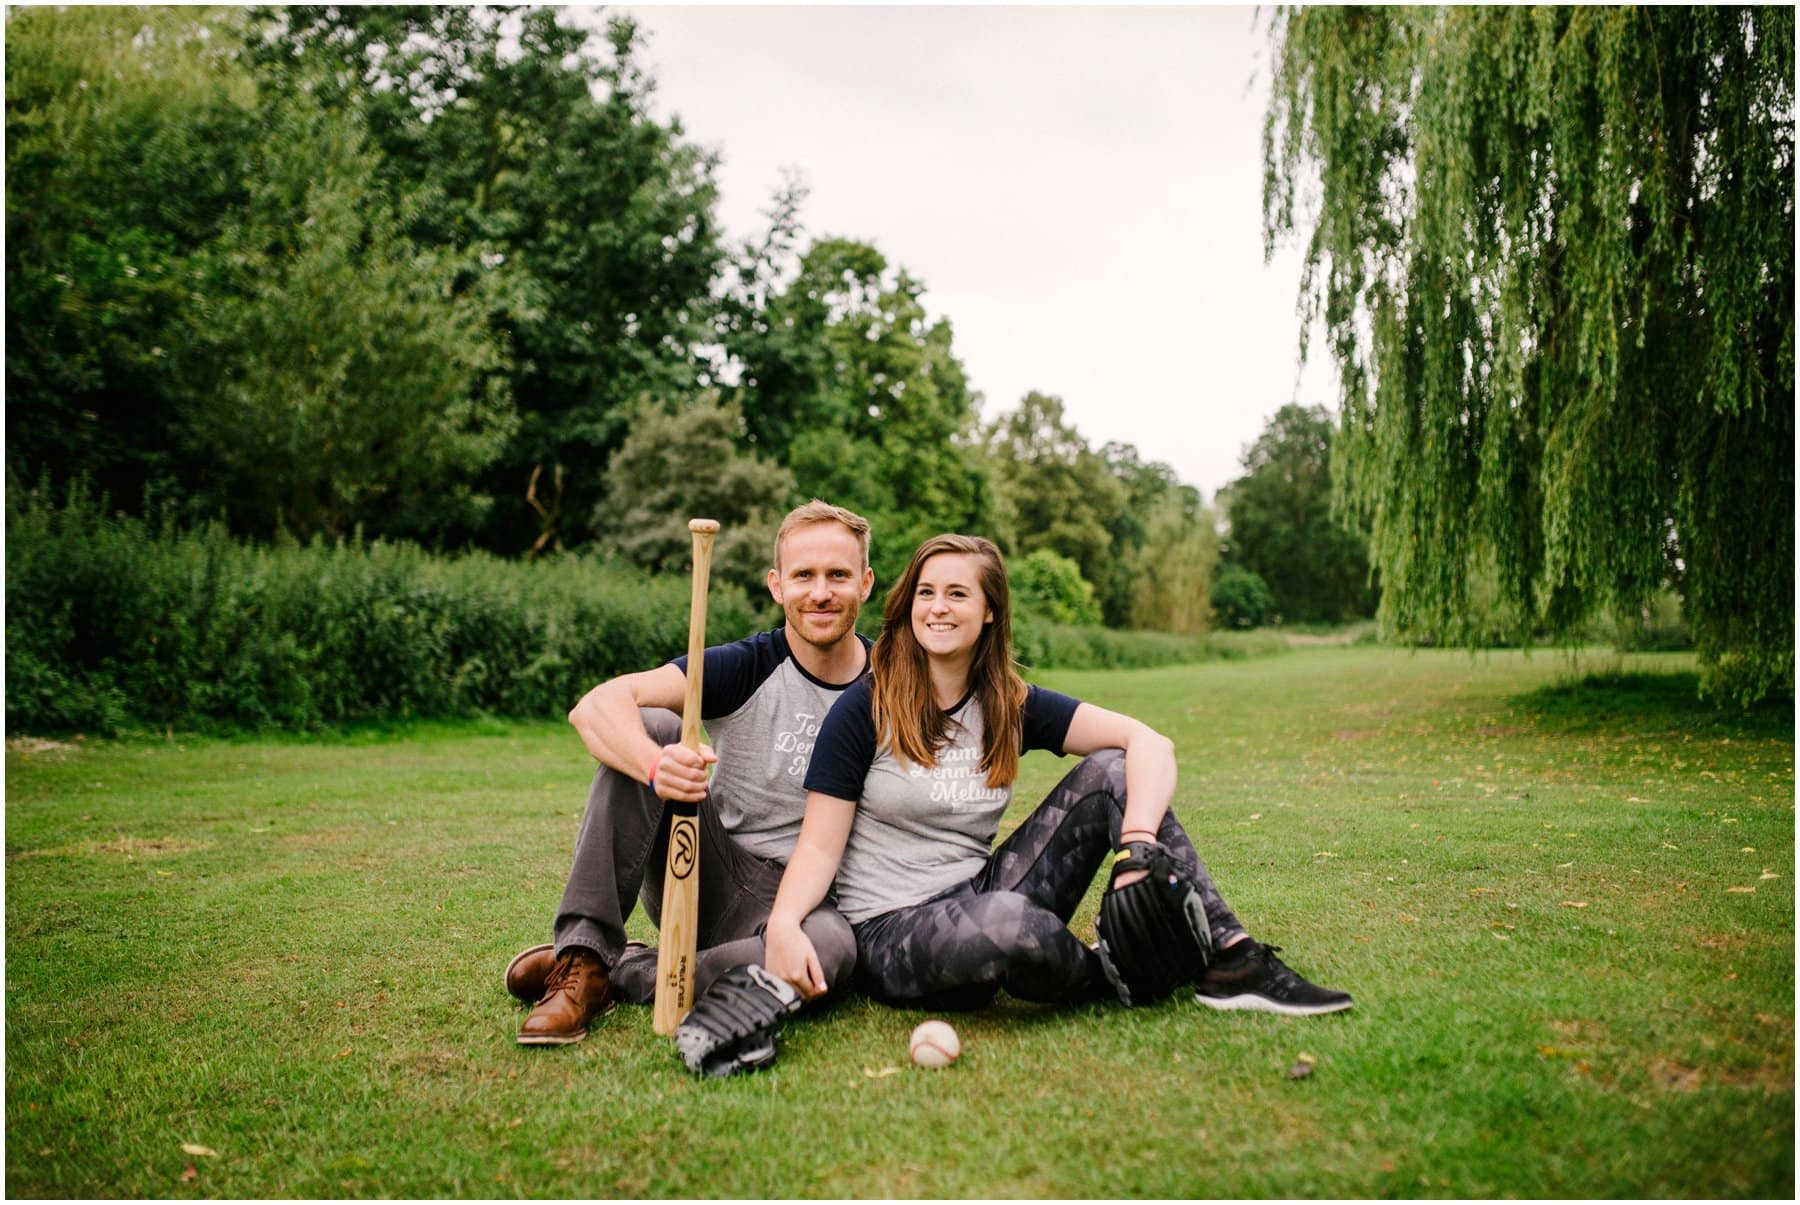 Meg and Dan's Baseball themed engagement session in Beacon Park, Lichfield